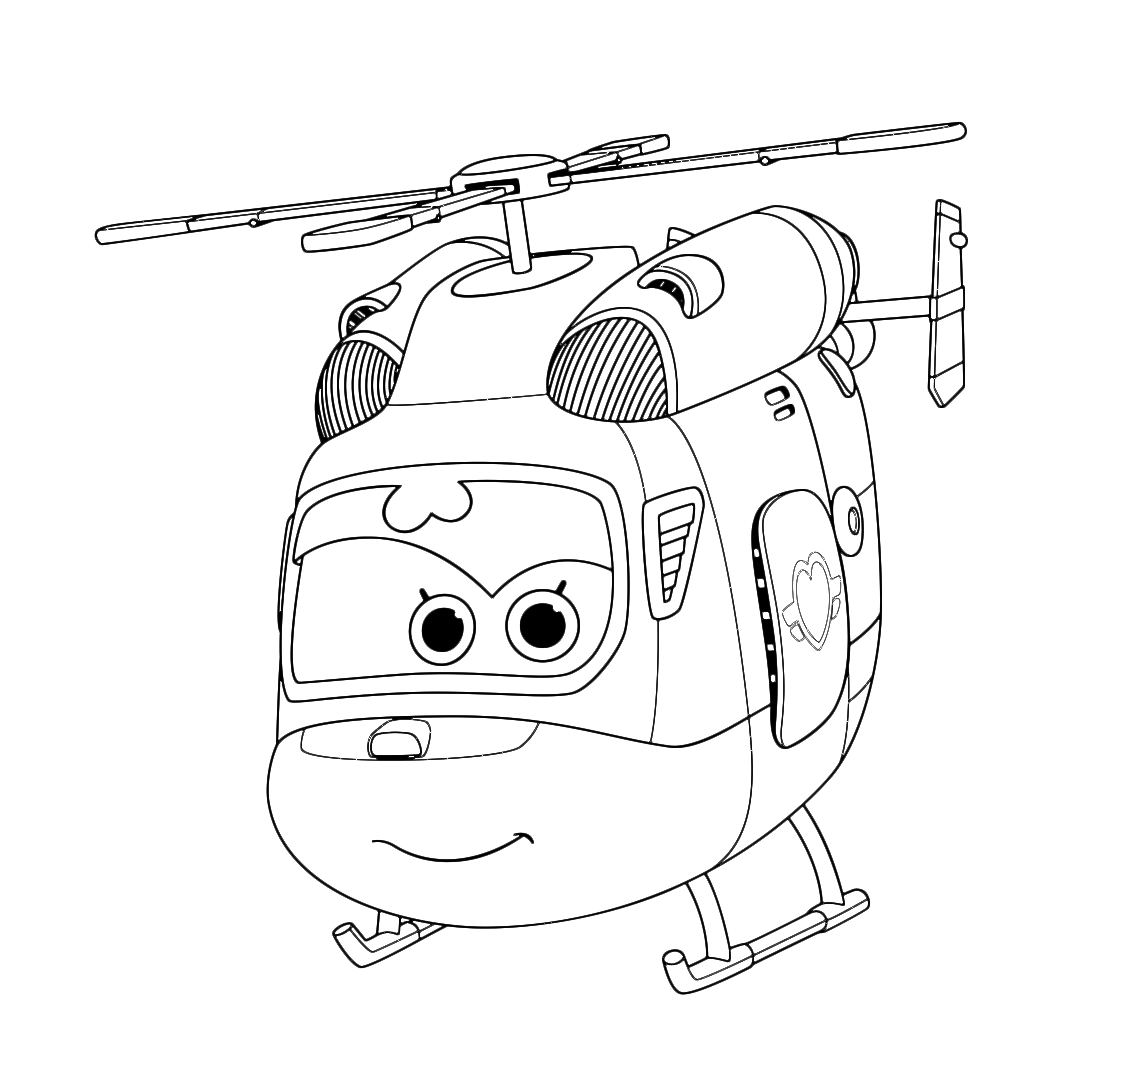 Super wings dizzy la bella elicotterina for Disegni da colorare super wings